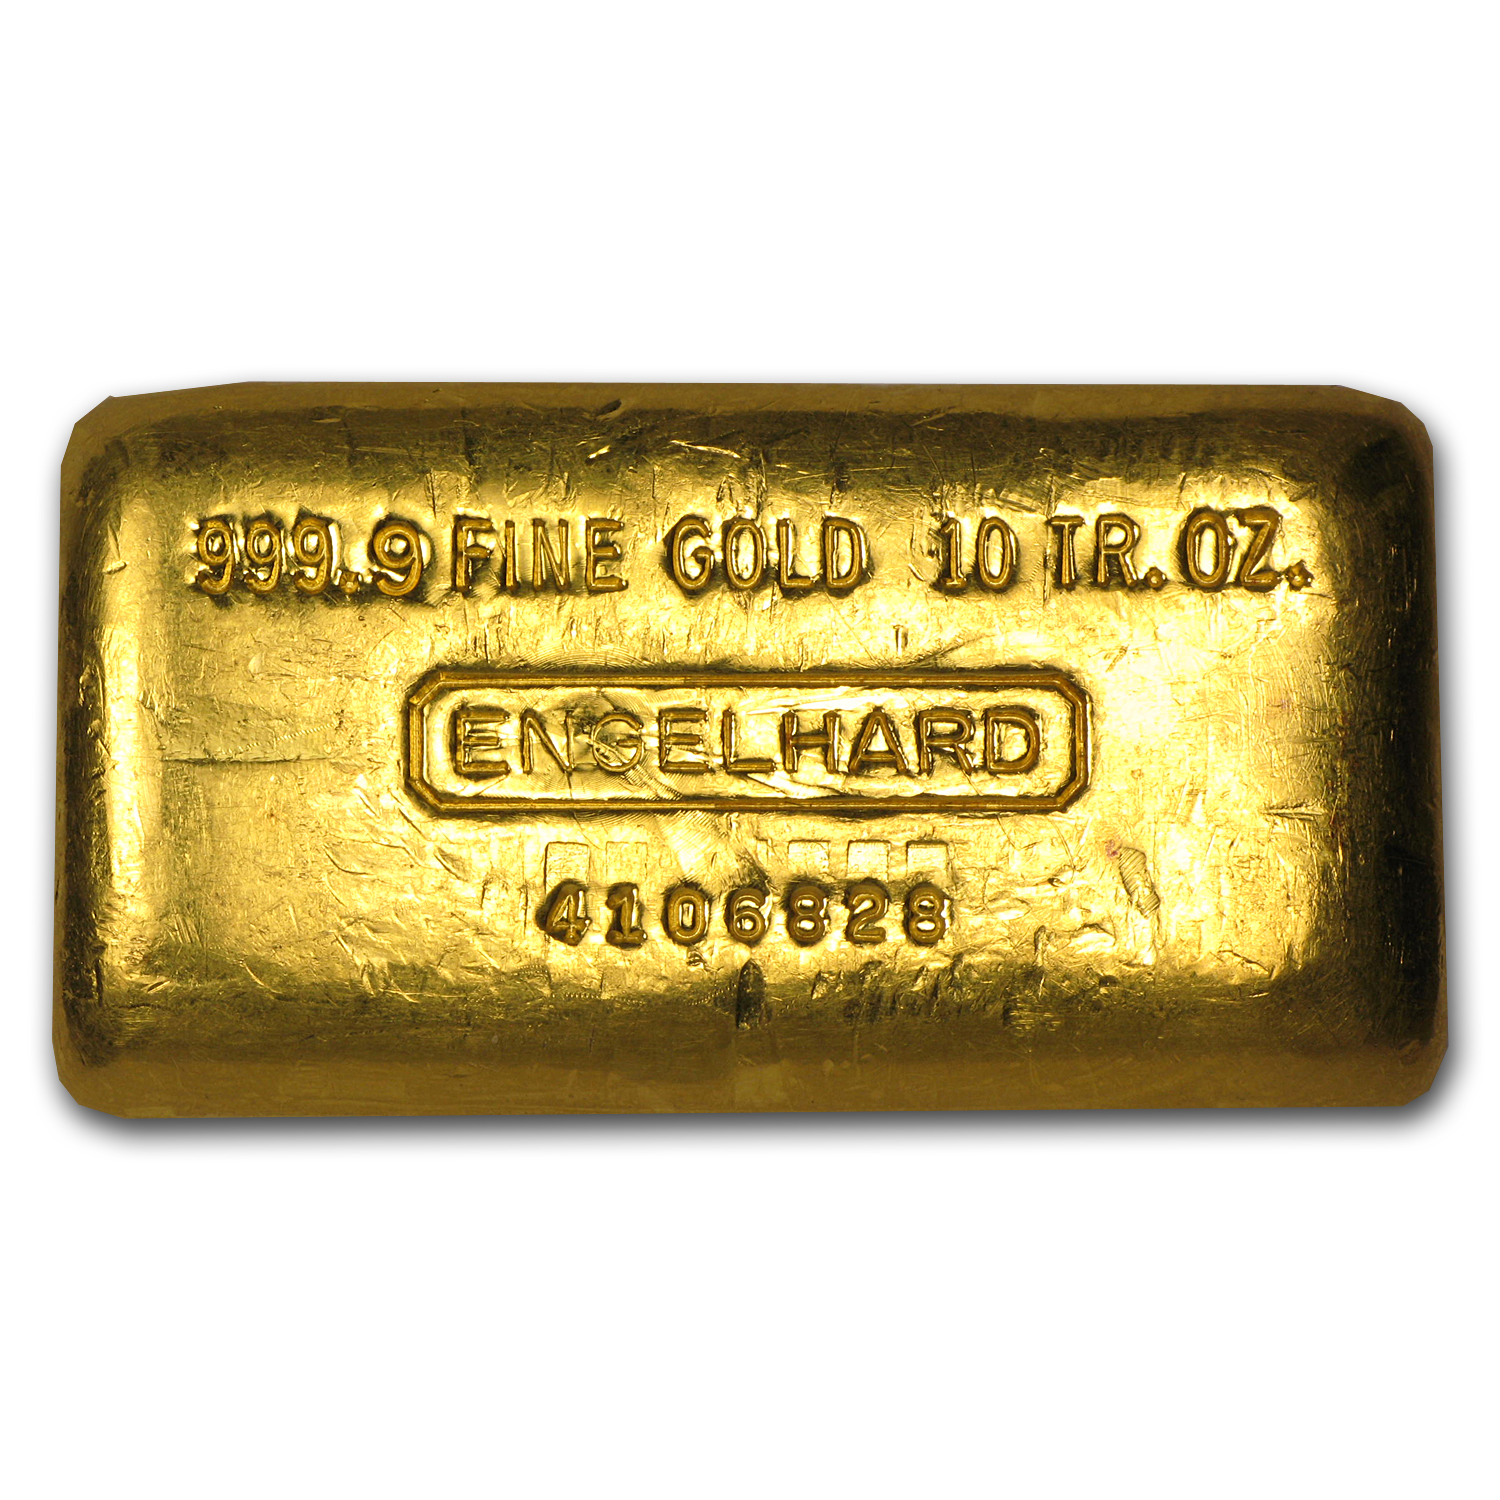 10 oz Gold Bars - Engelhard (Poured/Loaf-Style)